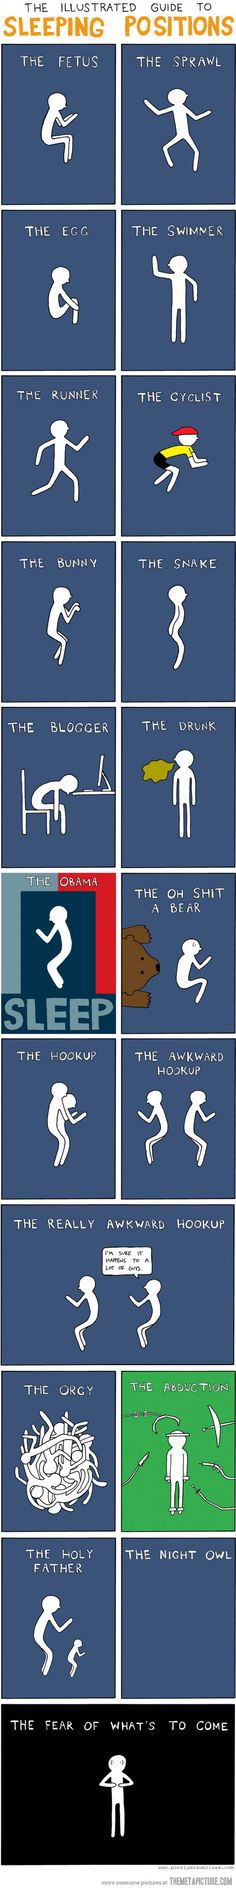 The illustrated guide to sleeping positions...